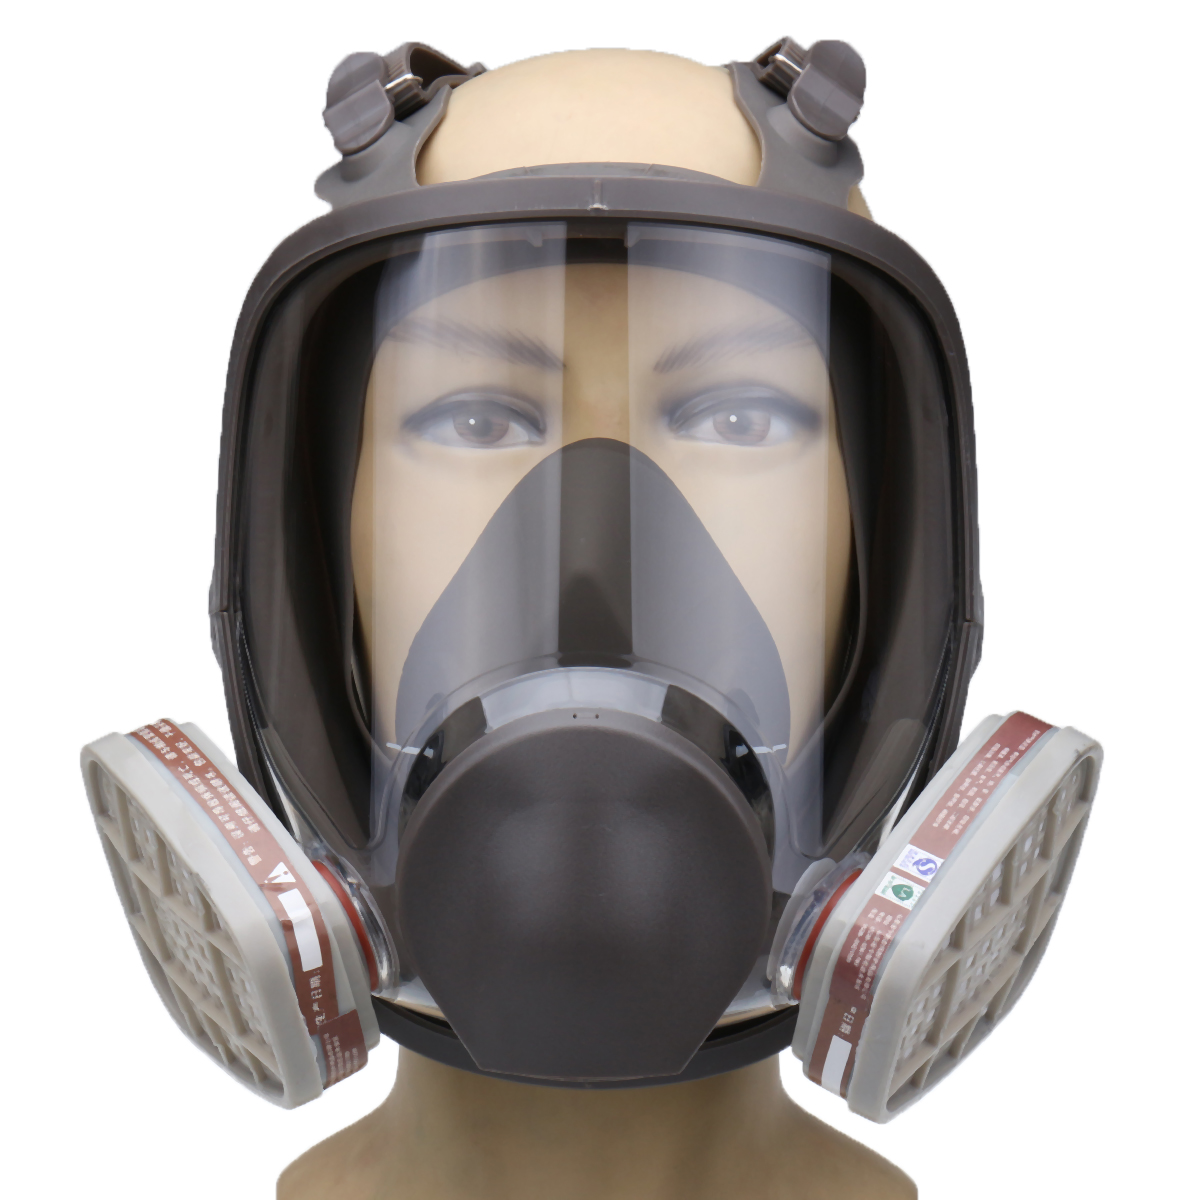 Silicone Facepiece Respirator 6800 Full Face Gas Mask P